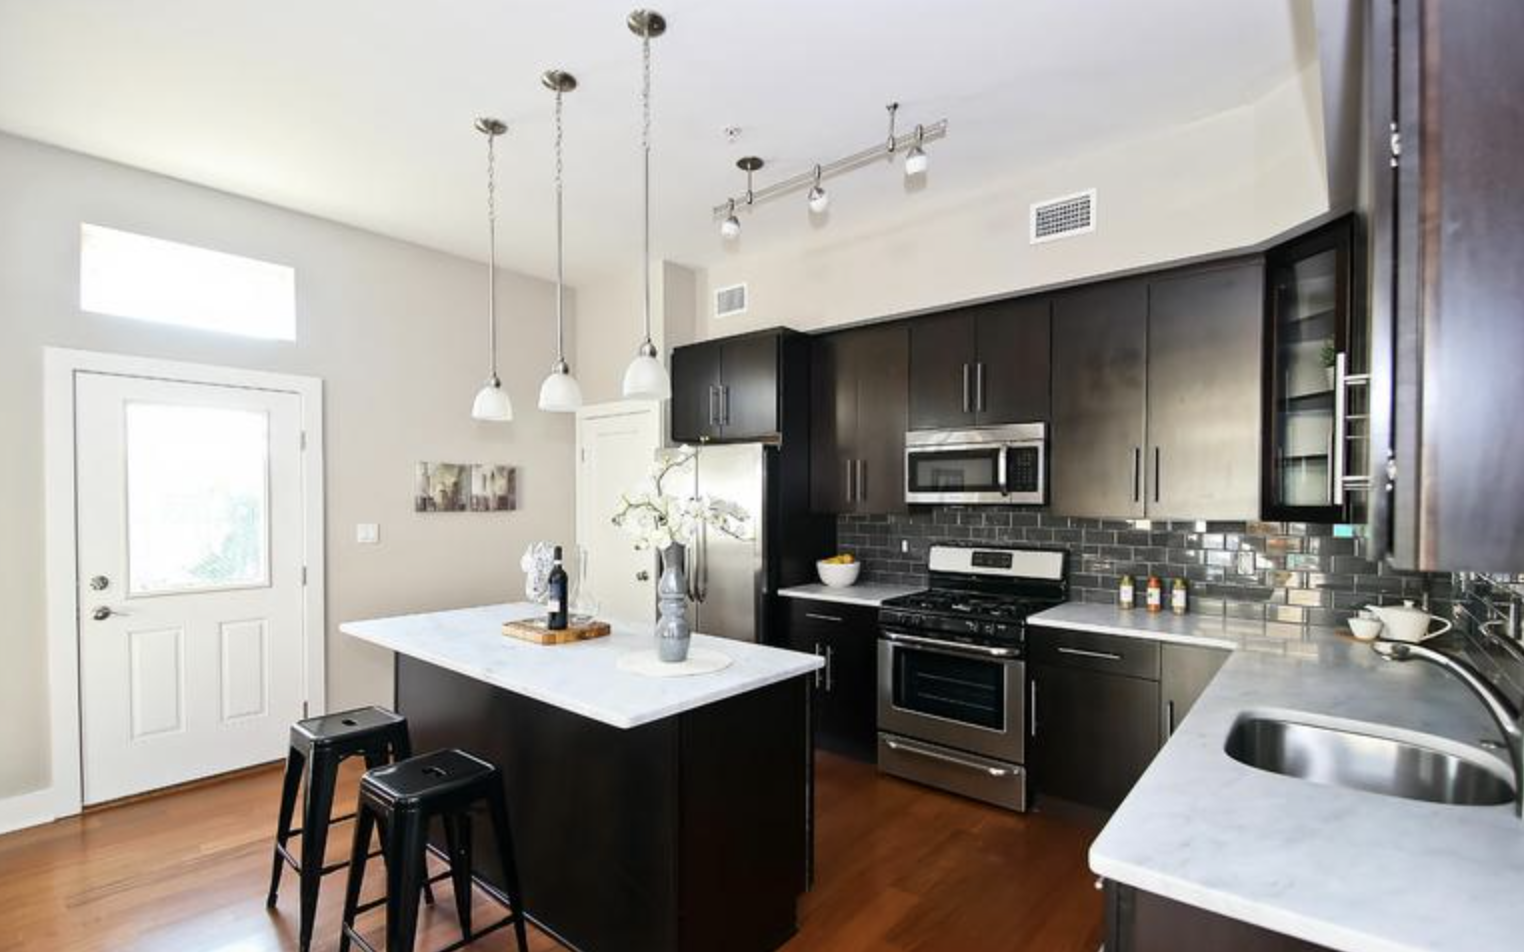 THE NORTH STAR - 762 PARK RD NW - 7 2BR/2BA CONDOS IN COLUMBIA HEIGHTS